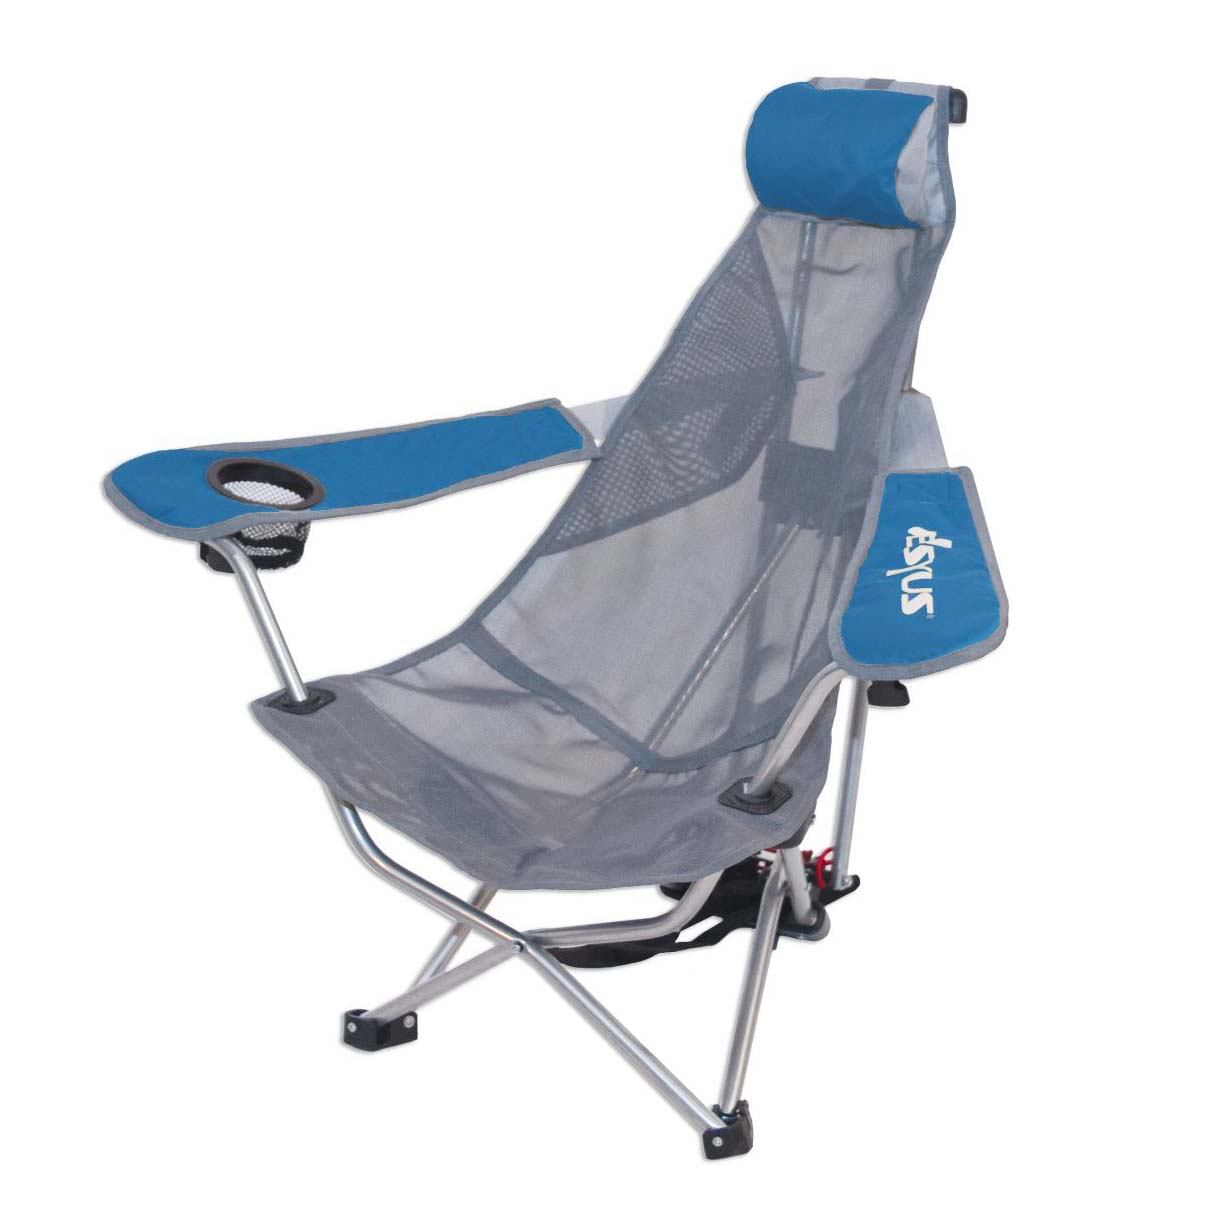 with product portable s store camping beach new solid folding dhgate com construction chairs blue chair on piece backpack online